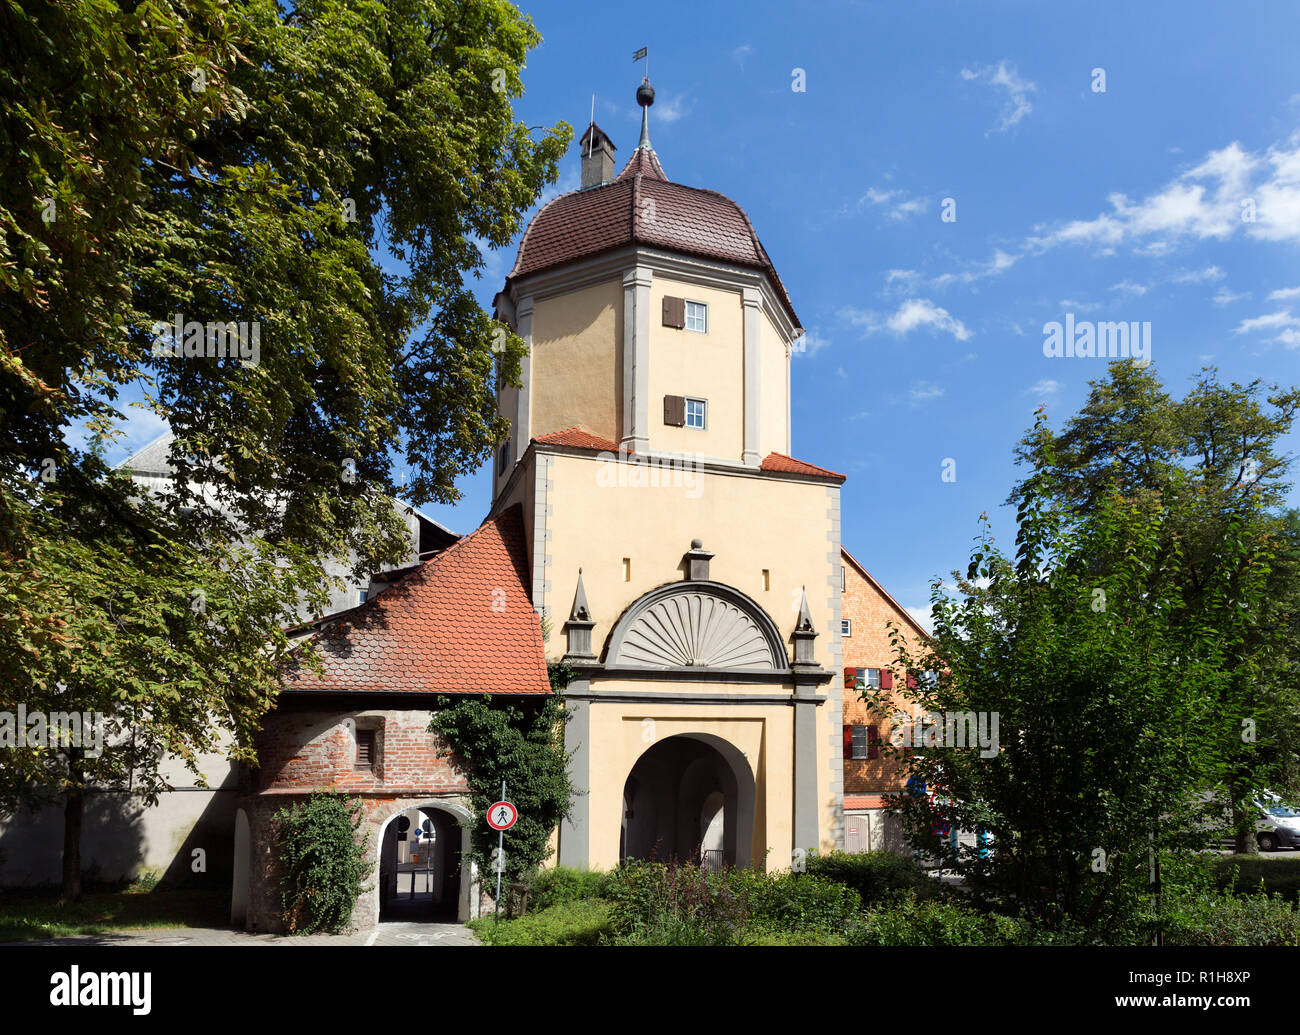 Westertor, one of several preserved city gates of the medieval city fortification, Memmingen, Swabia, Bavaria, Germany - Stock Image